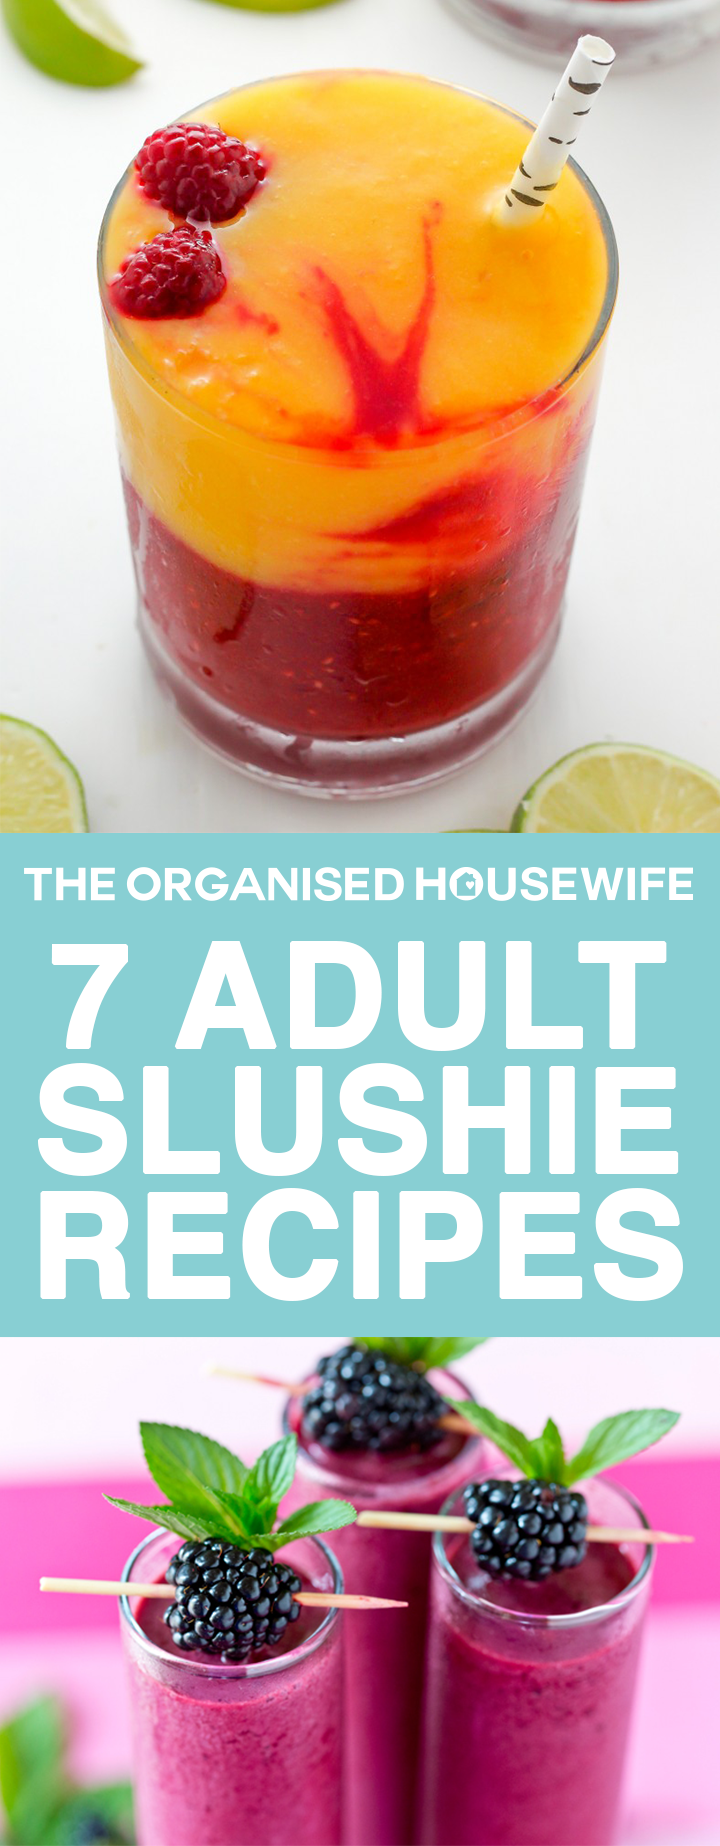 Adult slushie recipes are deliciously deceiving, they are sweet, fruity and ooh so refreshing.